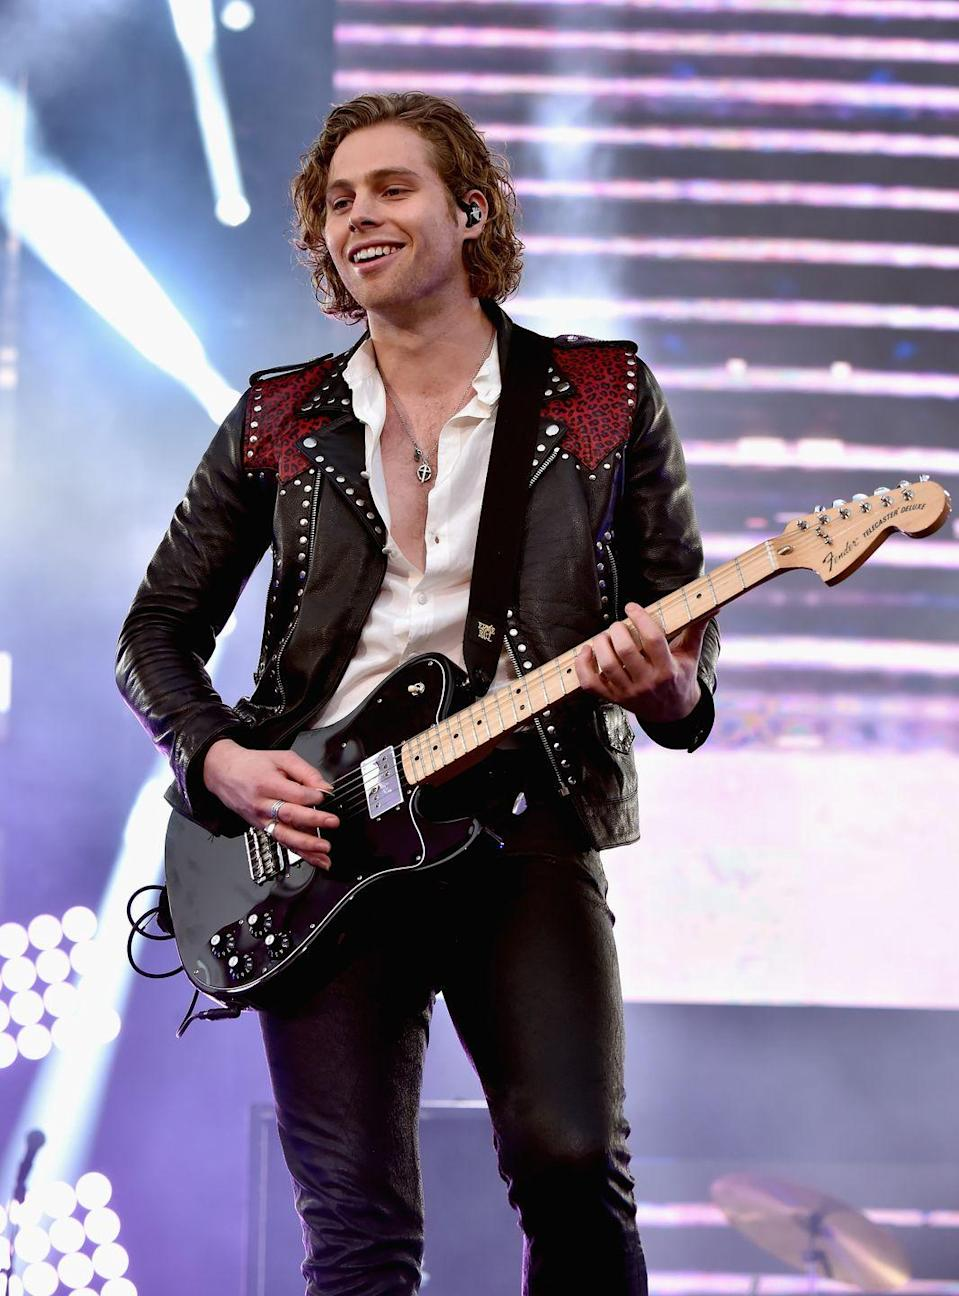 "<p>Height: 6""2'-6""4'</p><p>Despite contention from the fans about it, the frontman of <a href=""https://www.menshealth.com/entertainment/a31955759/5sos-interview-album-calm-music/"" rel=""nofollow noopener"" target=""_blank"" data-ylk=""slk:5 Seconds of Summer"" class=""link rapid-noclick-resp"">5 Seconds of Summer</a> thinks he's ""6'2"" <a href=""https://youtu.be/-B0qVahzkXU?t=67"" rel=""nofollow noopener"" target=""_blank"" data-ylk=""slk:at best"" class=""link rapid-noclick-resp"">at best</a>.""</p>"